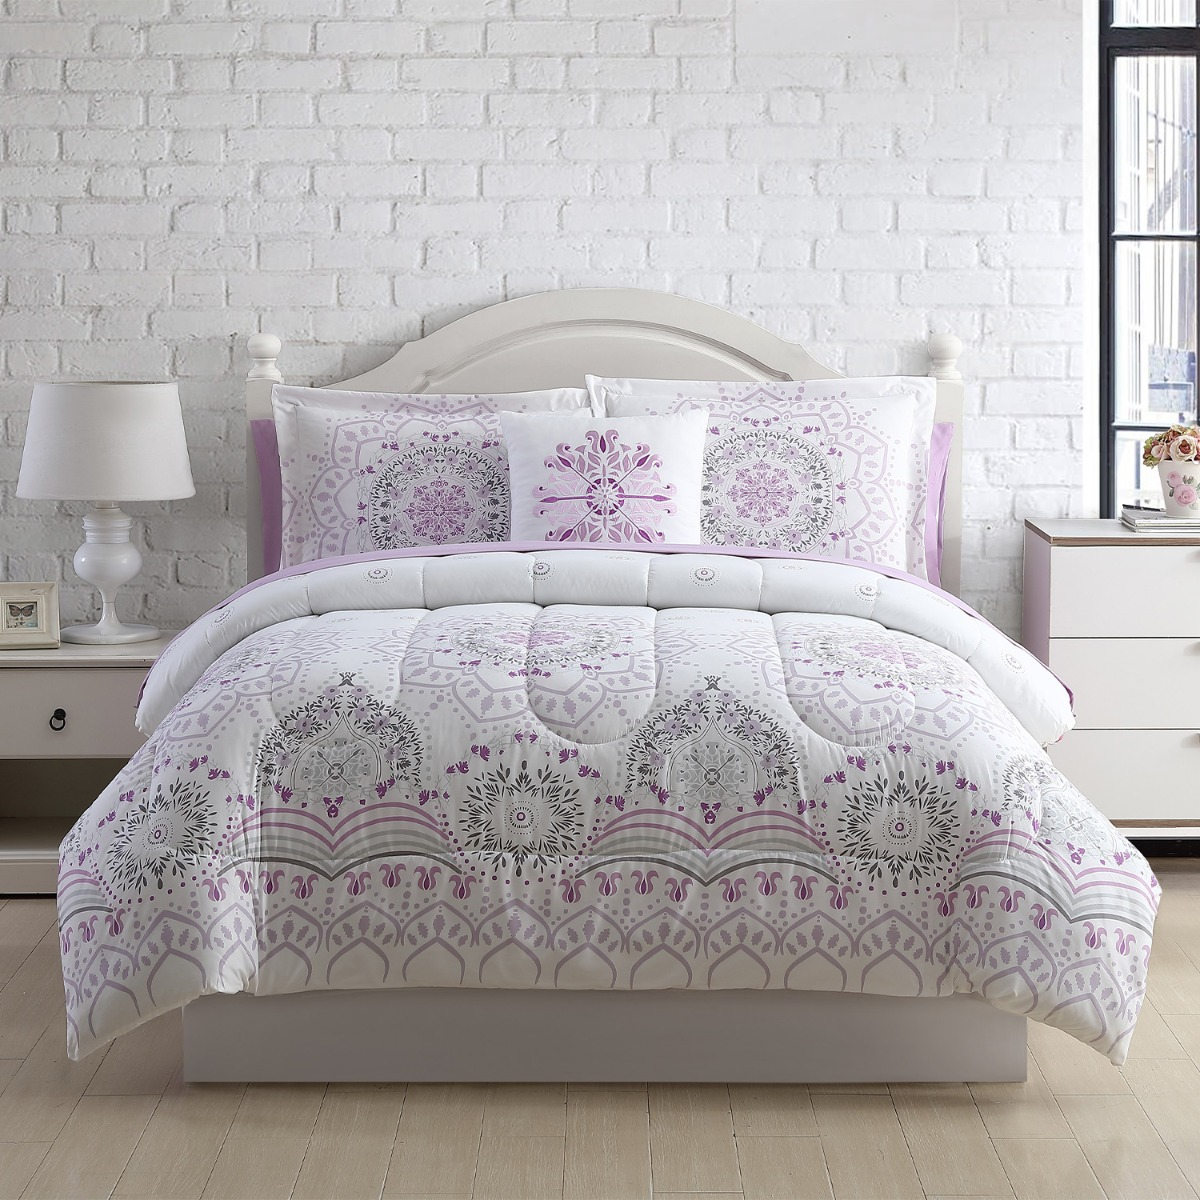 8 Piece Medallion Plush Overfilled Full Queen Comforter And Deep Pocket Sheet Bedding Set Purple Grey White Walmart Com Walmart Com